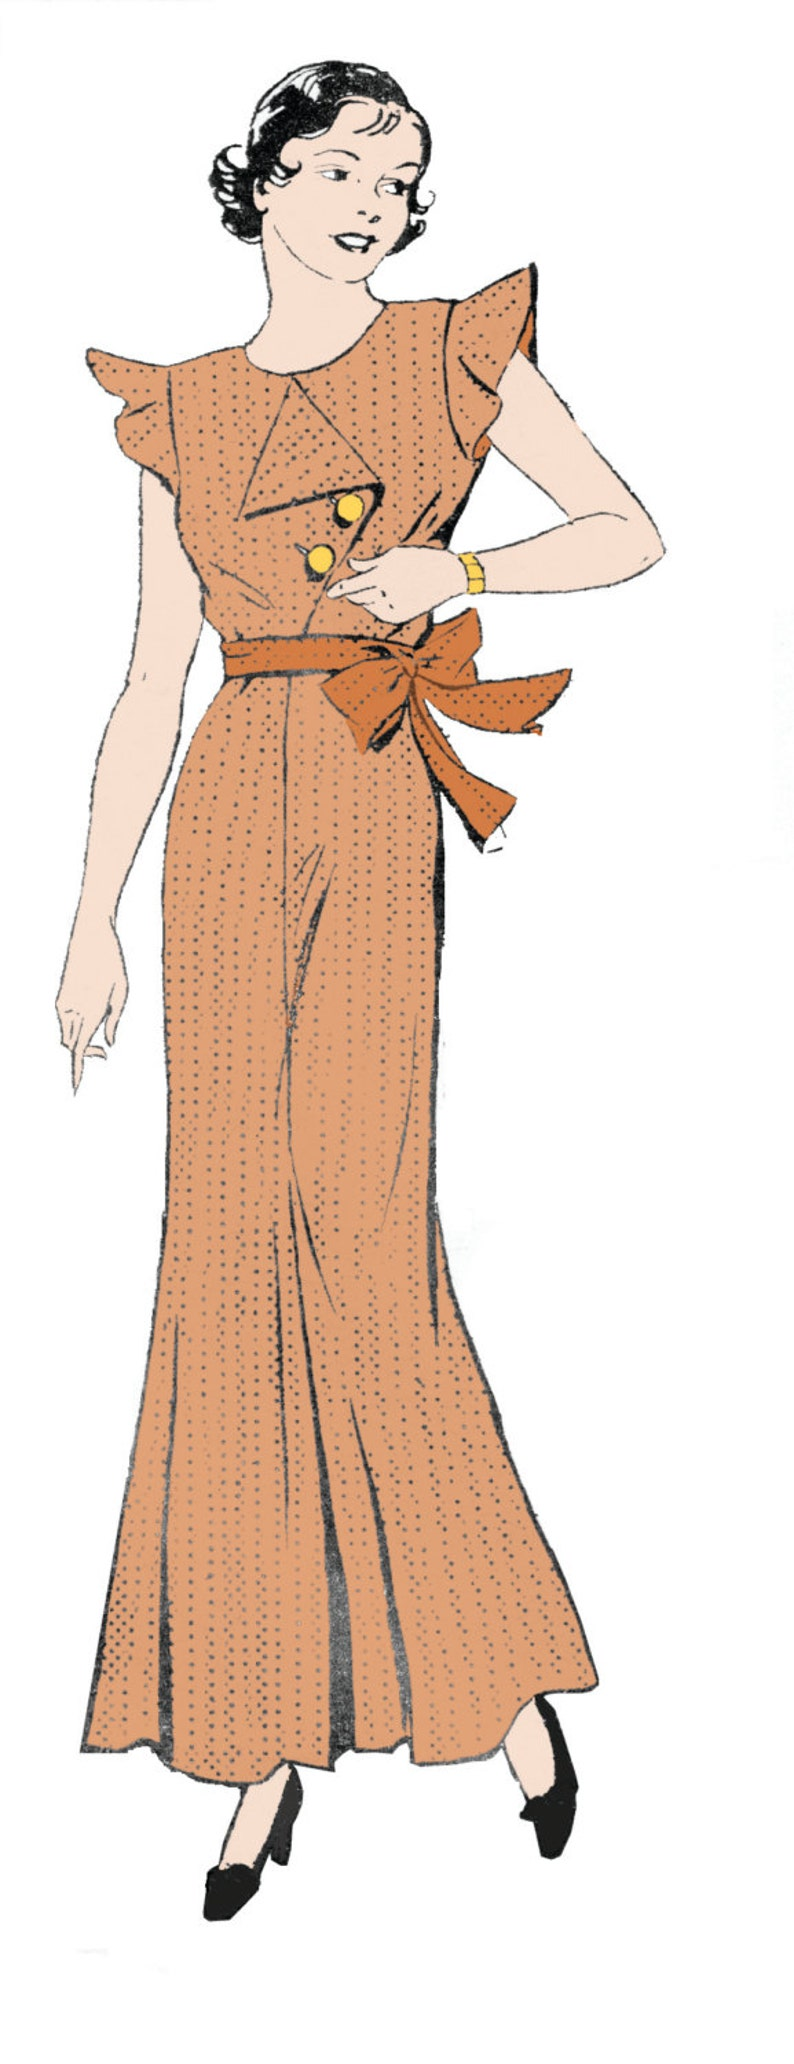 1930s Wide Leg Pants and Beach Pajamas 1930s Ladies Beach Pajamas - Loungewear - Reproduction Sewing Pattern #T1536 - 36 Inch Bust $19.00 AT vintagedancer.com